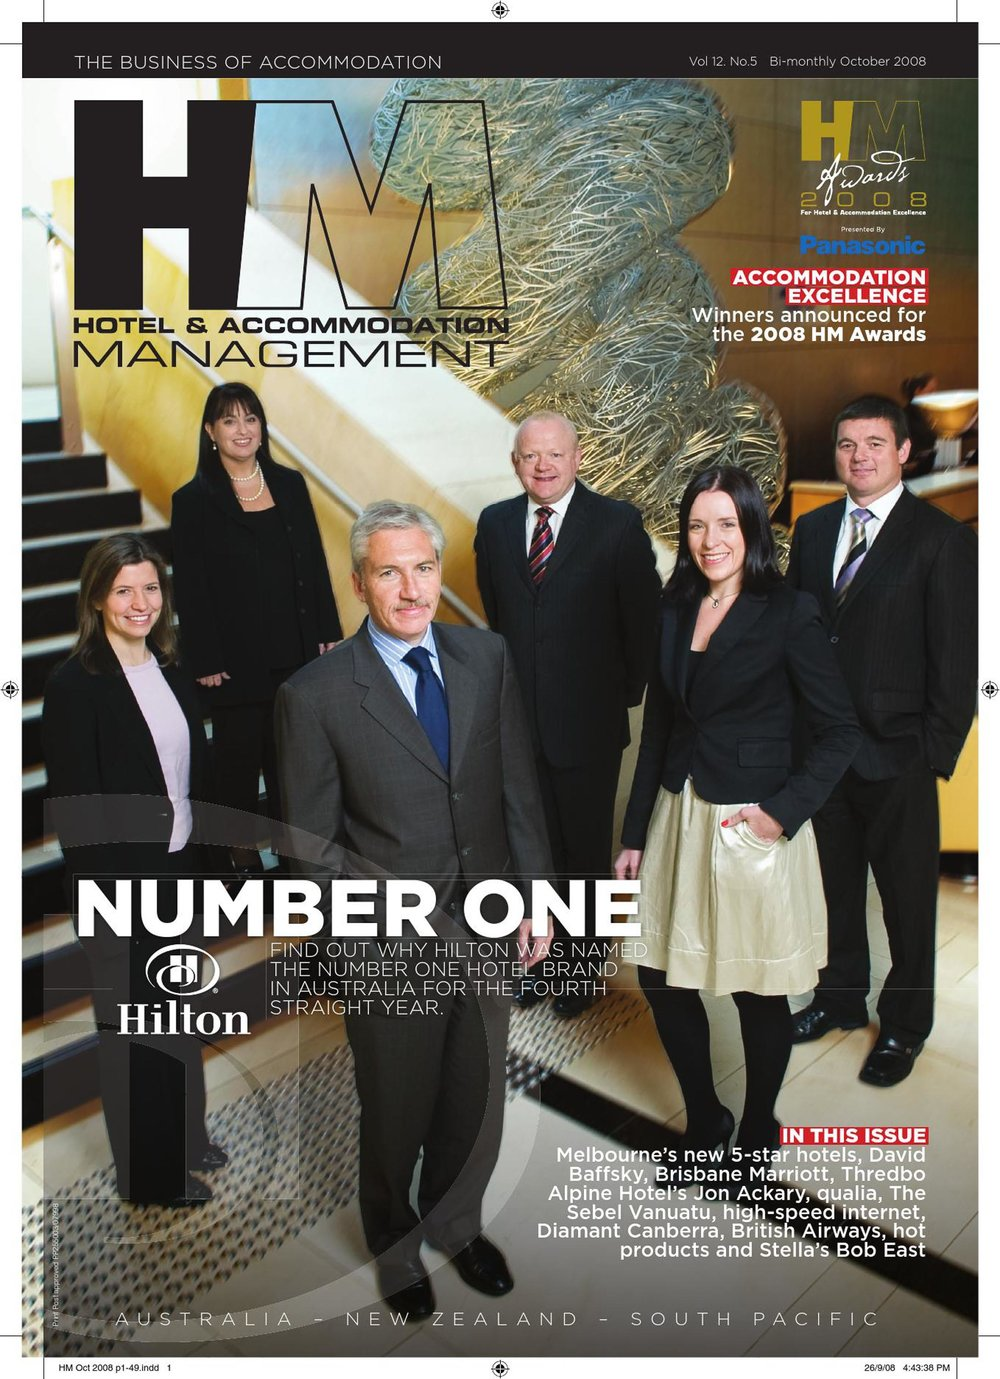 HM Oct08 Cover_000001.jpg